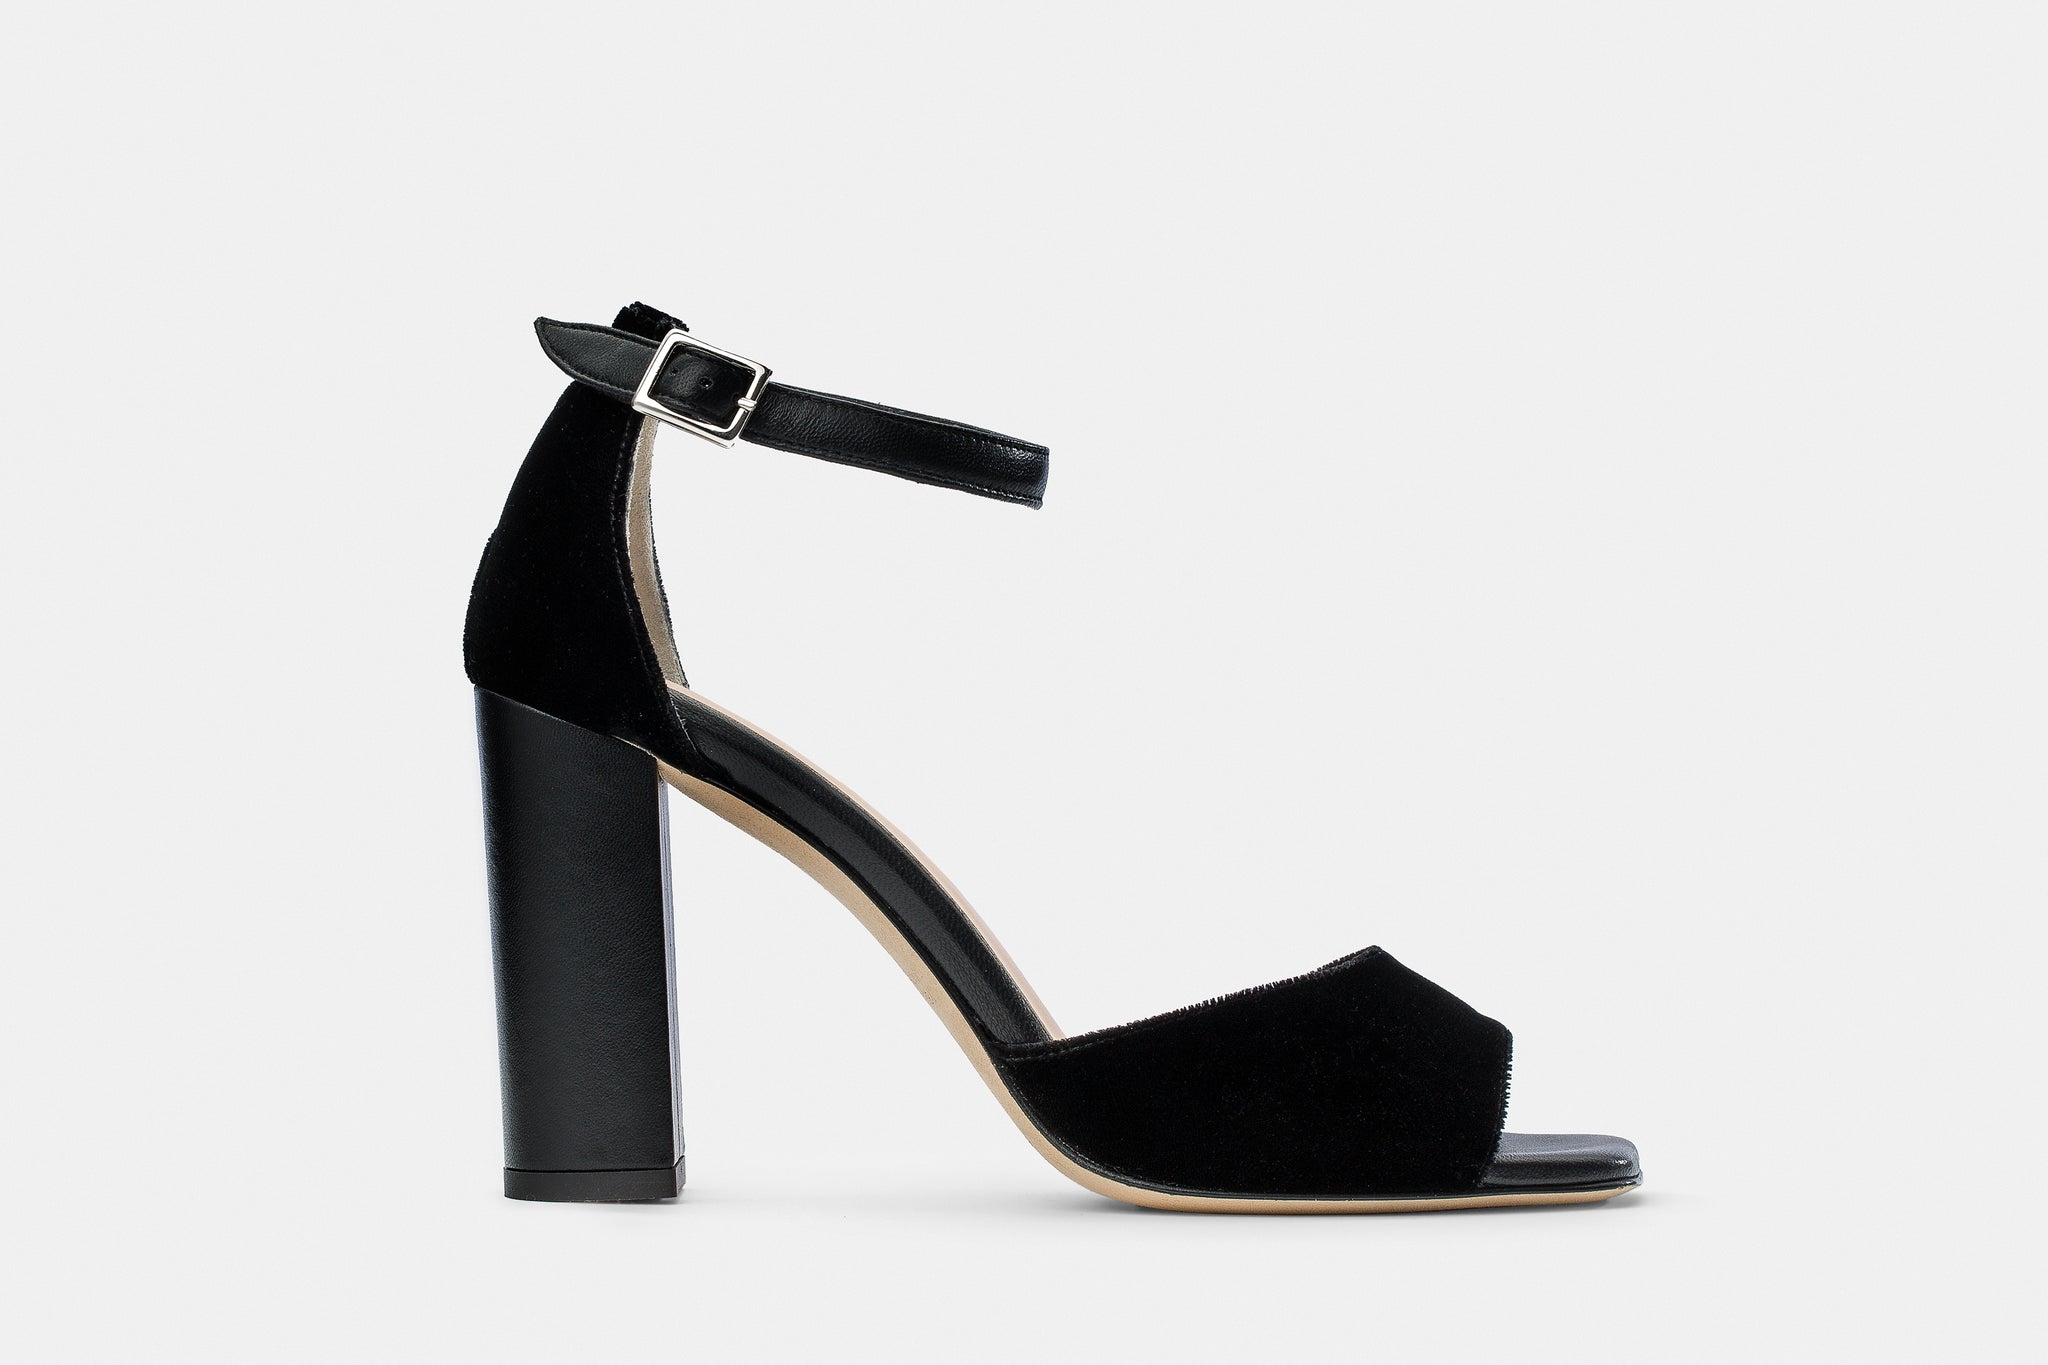 VELVET + NAPPA LEATHER CATHERINE SANDAL